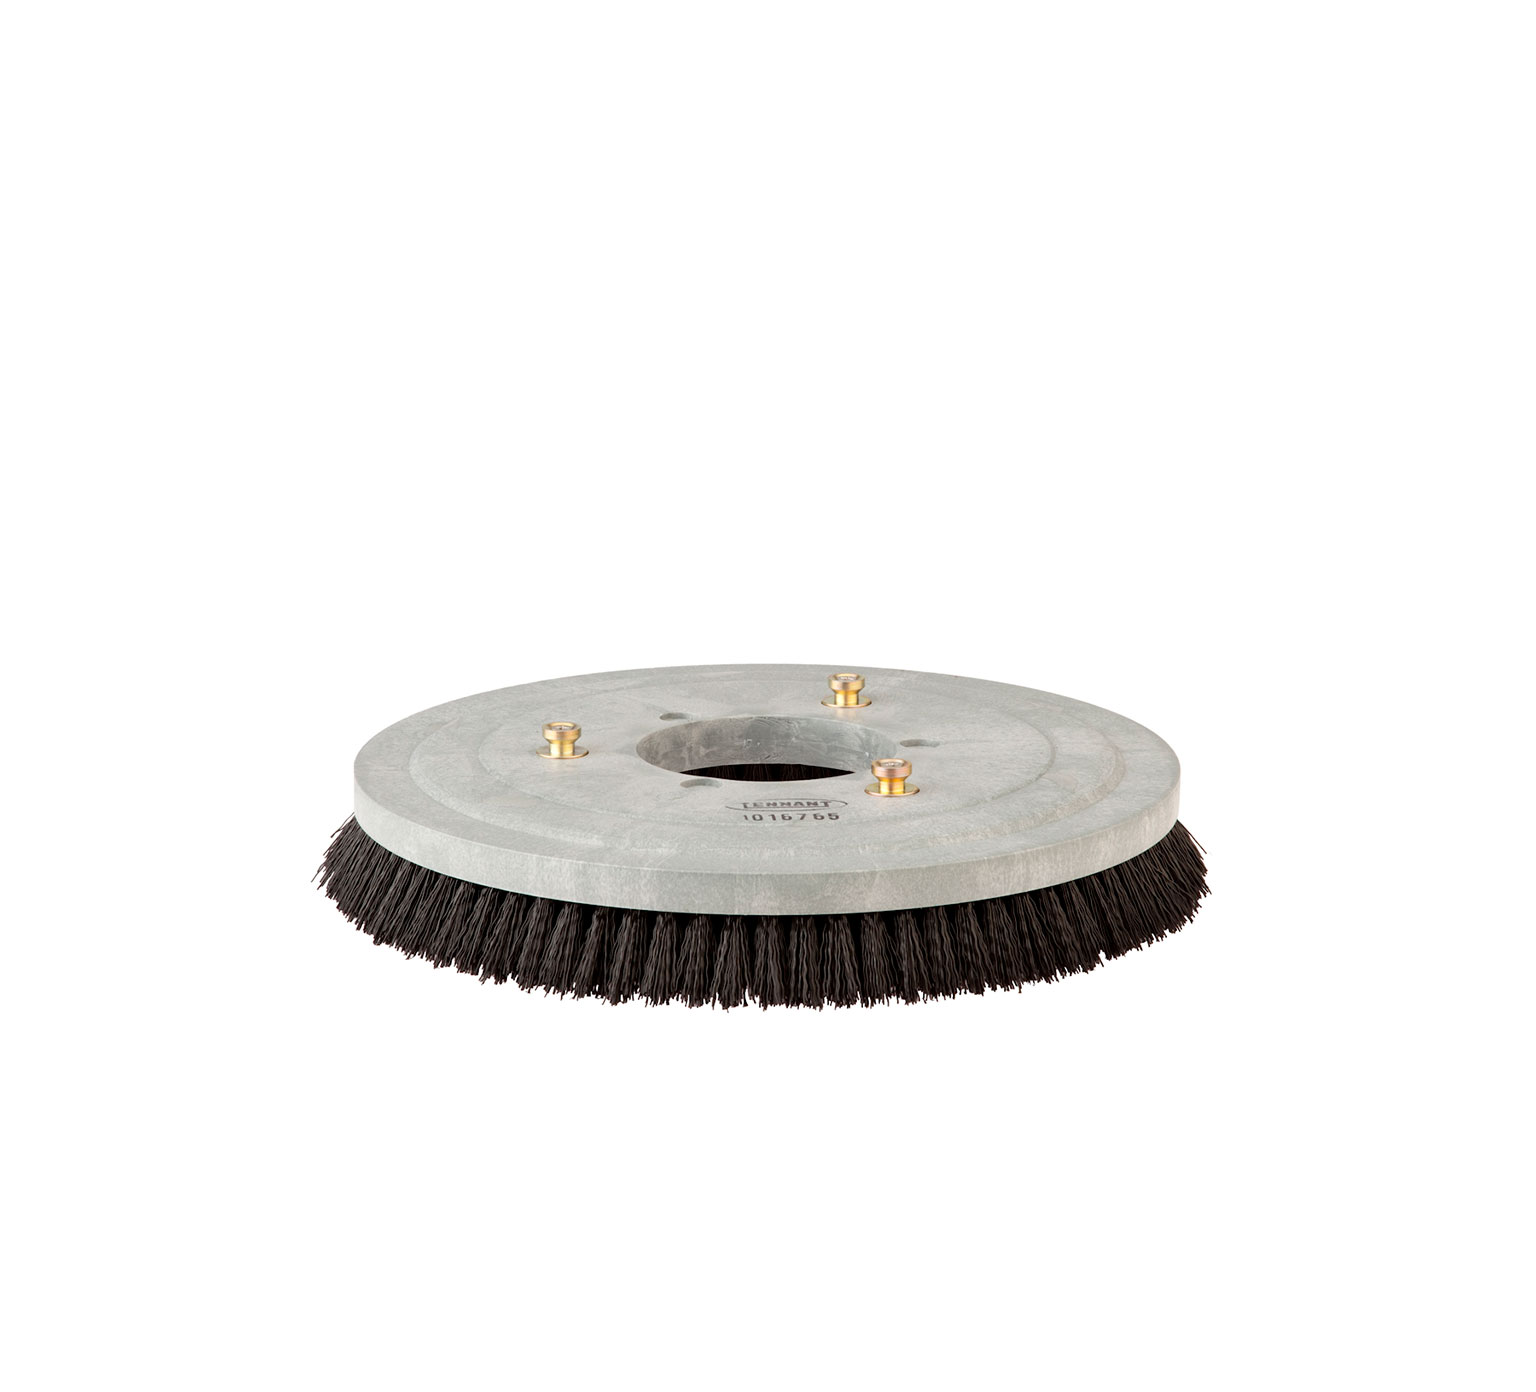 1016765 Polypropylene Disk Scrub Brush Assembly – 17 in / 432 mm alt 1